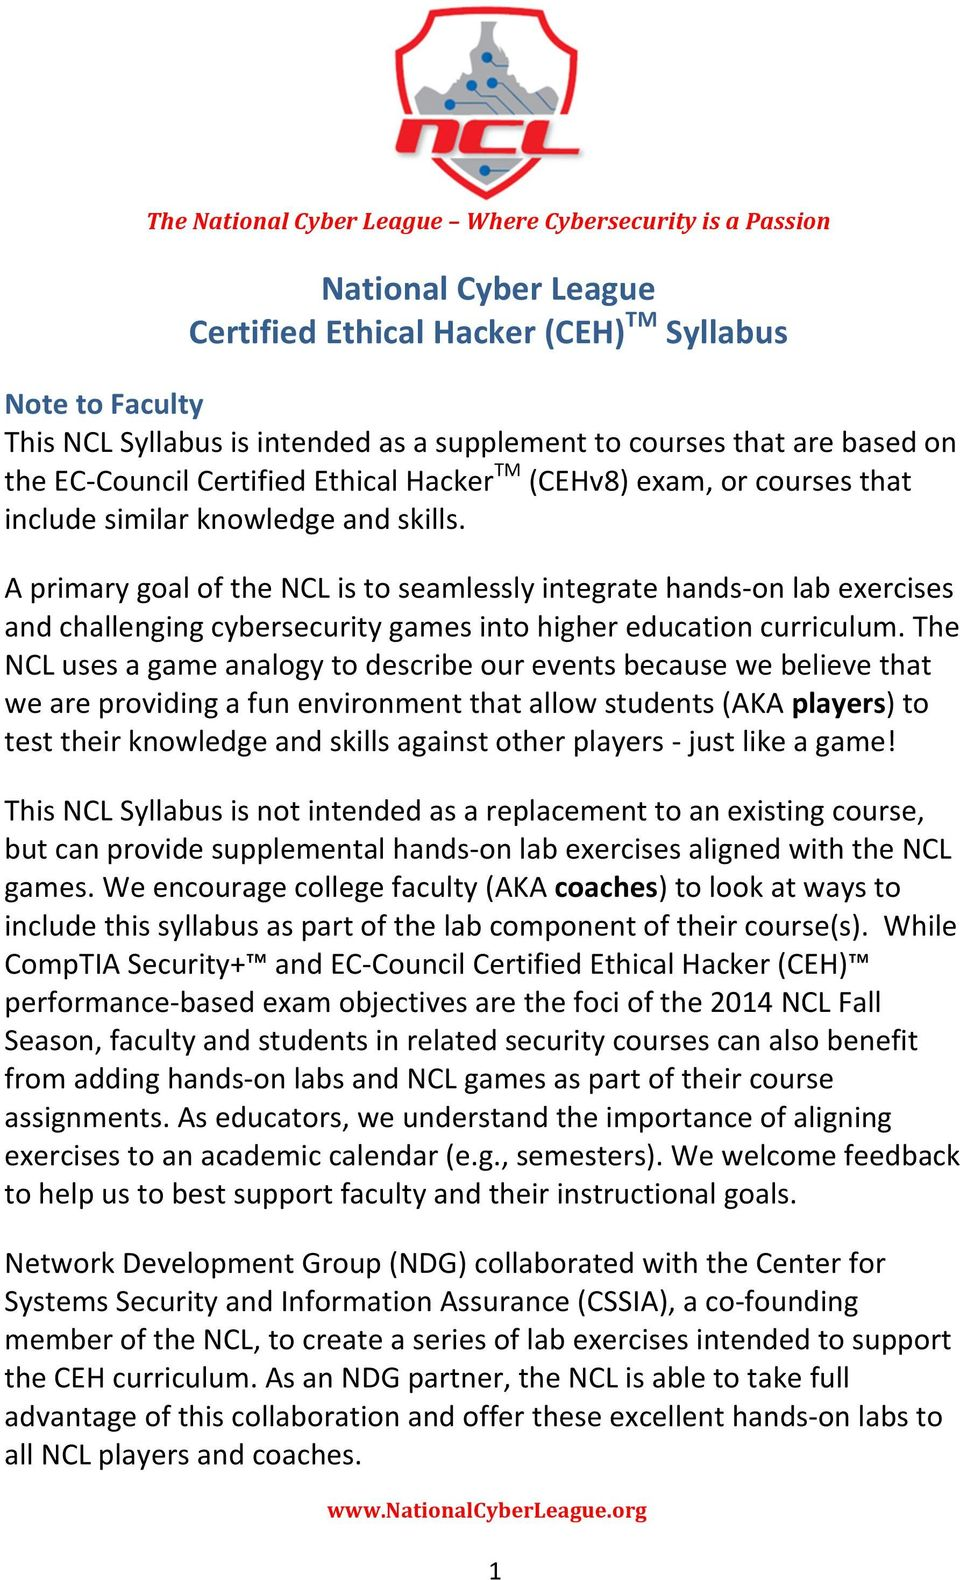 A primary goal of the NCL is to seamlessly integrate hands- on lab exercises and challenging cybersecurity games into higher education curriculum.